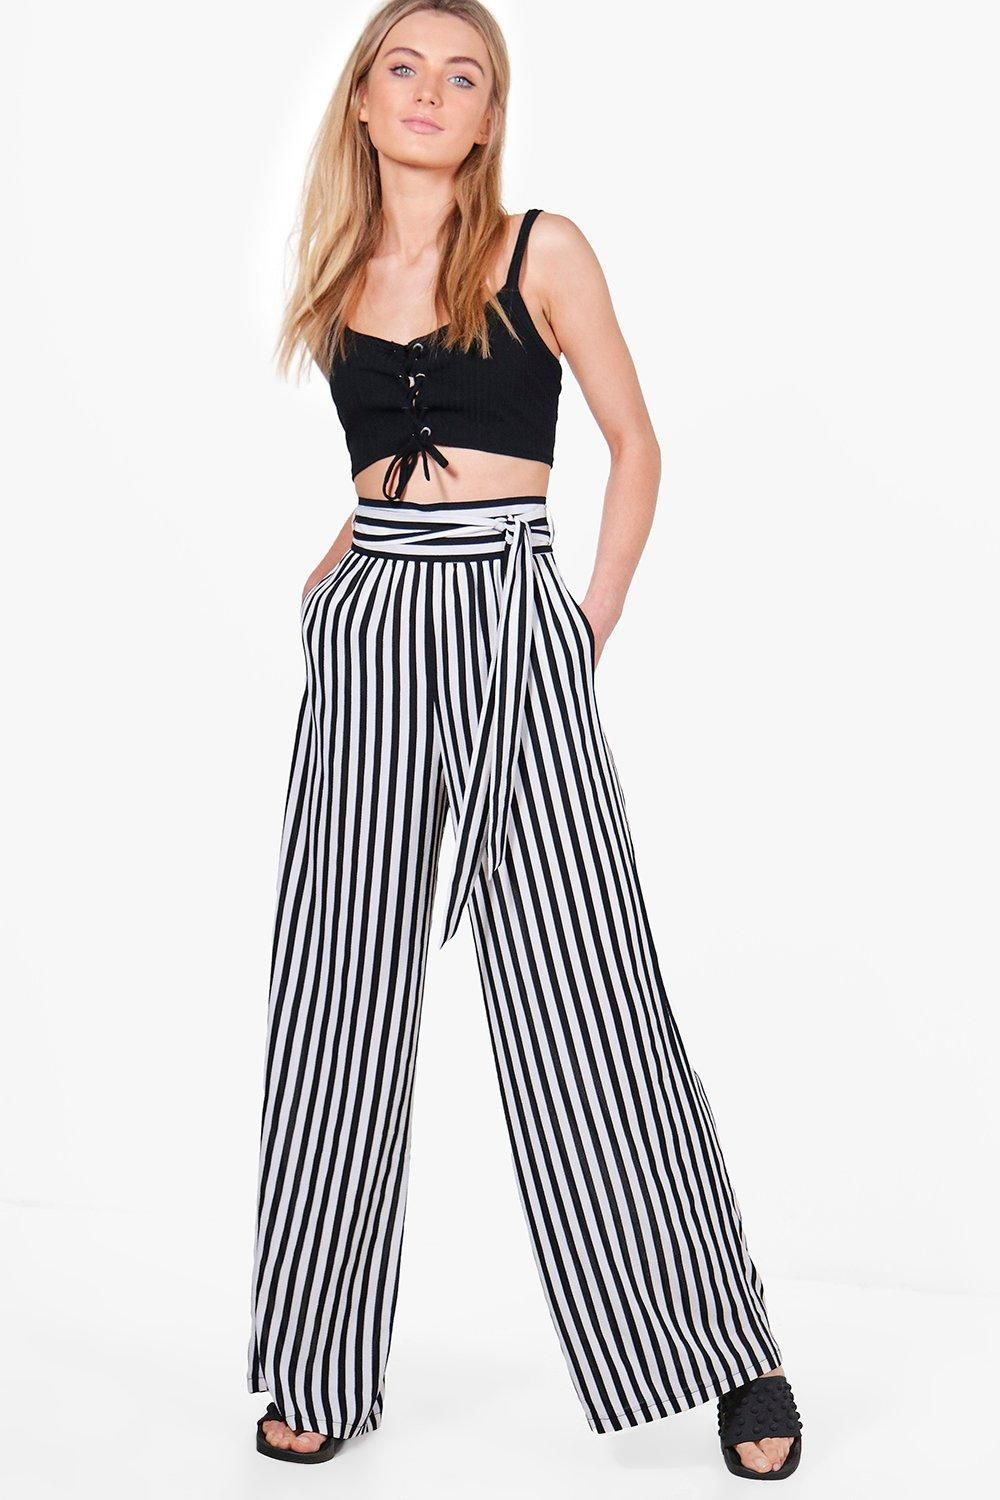 dbc967bebaf6 Tie Waist Striped Wide Leg Trousers | Smart | Striped wide leg ...